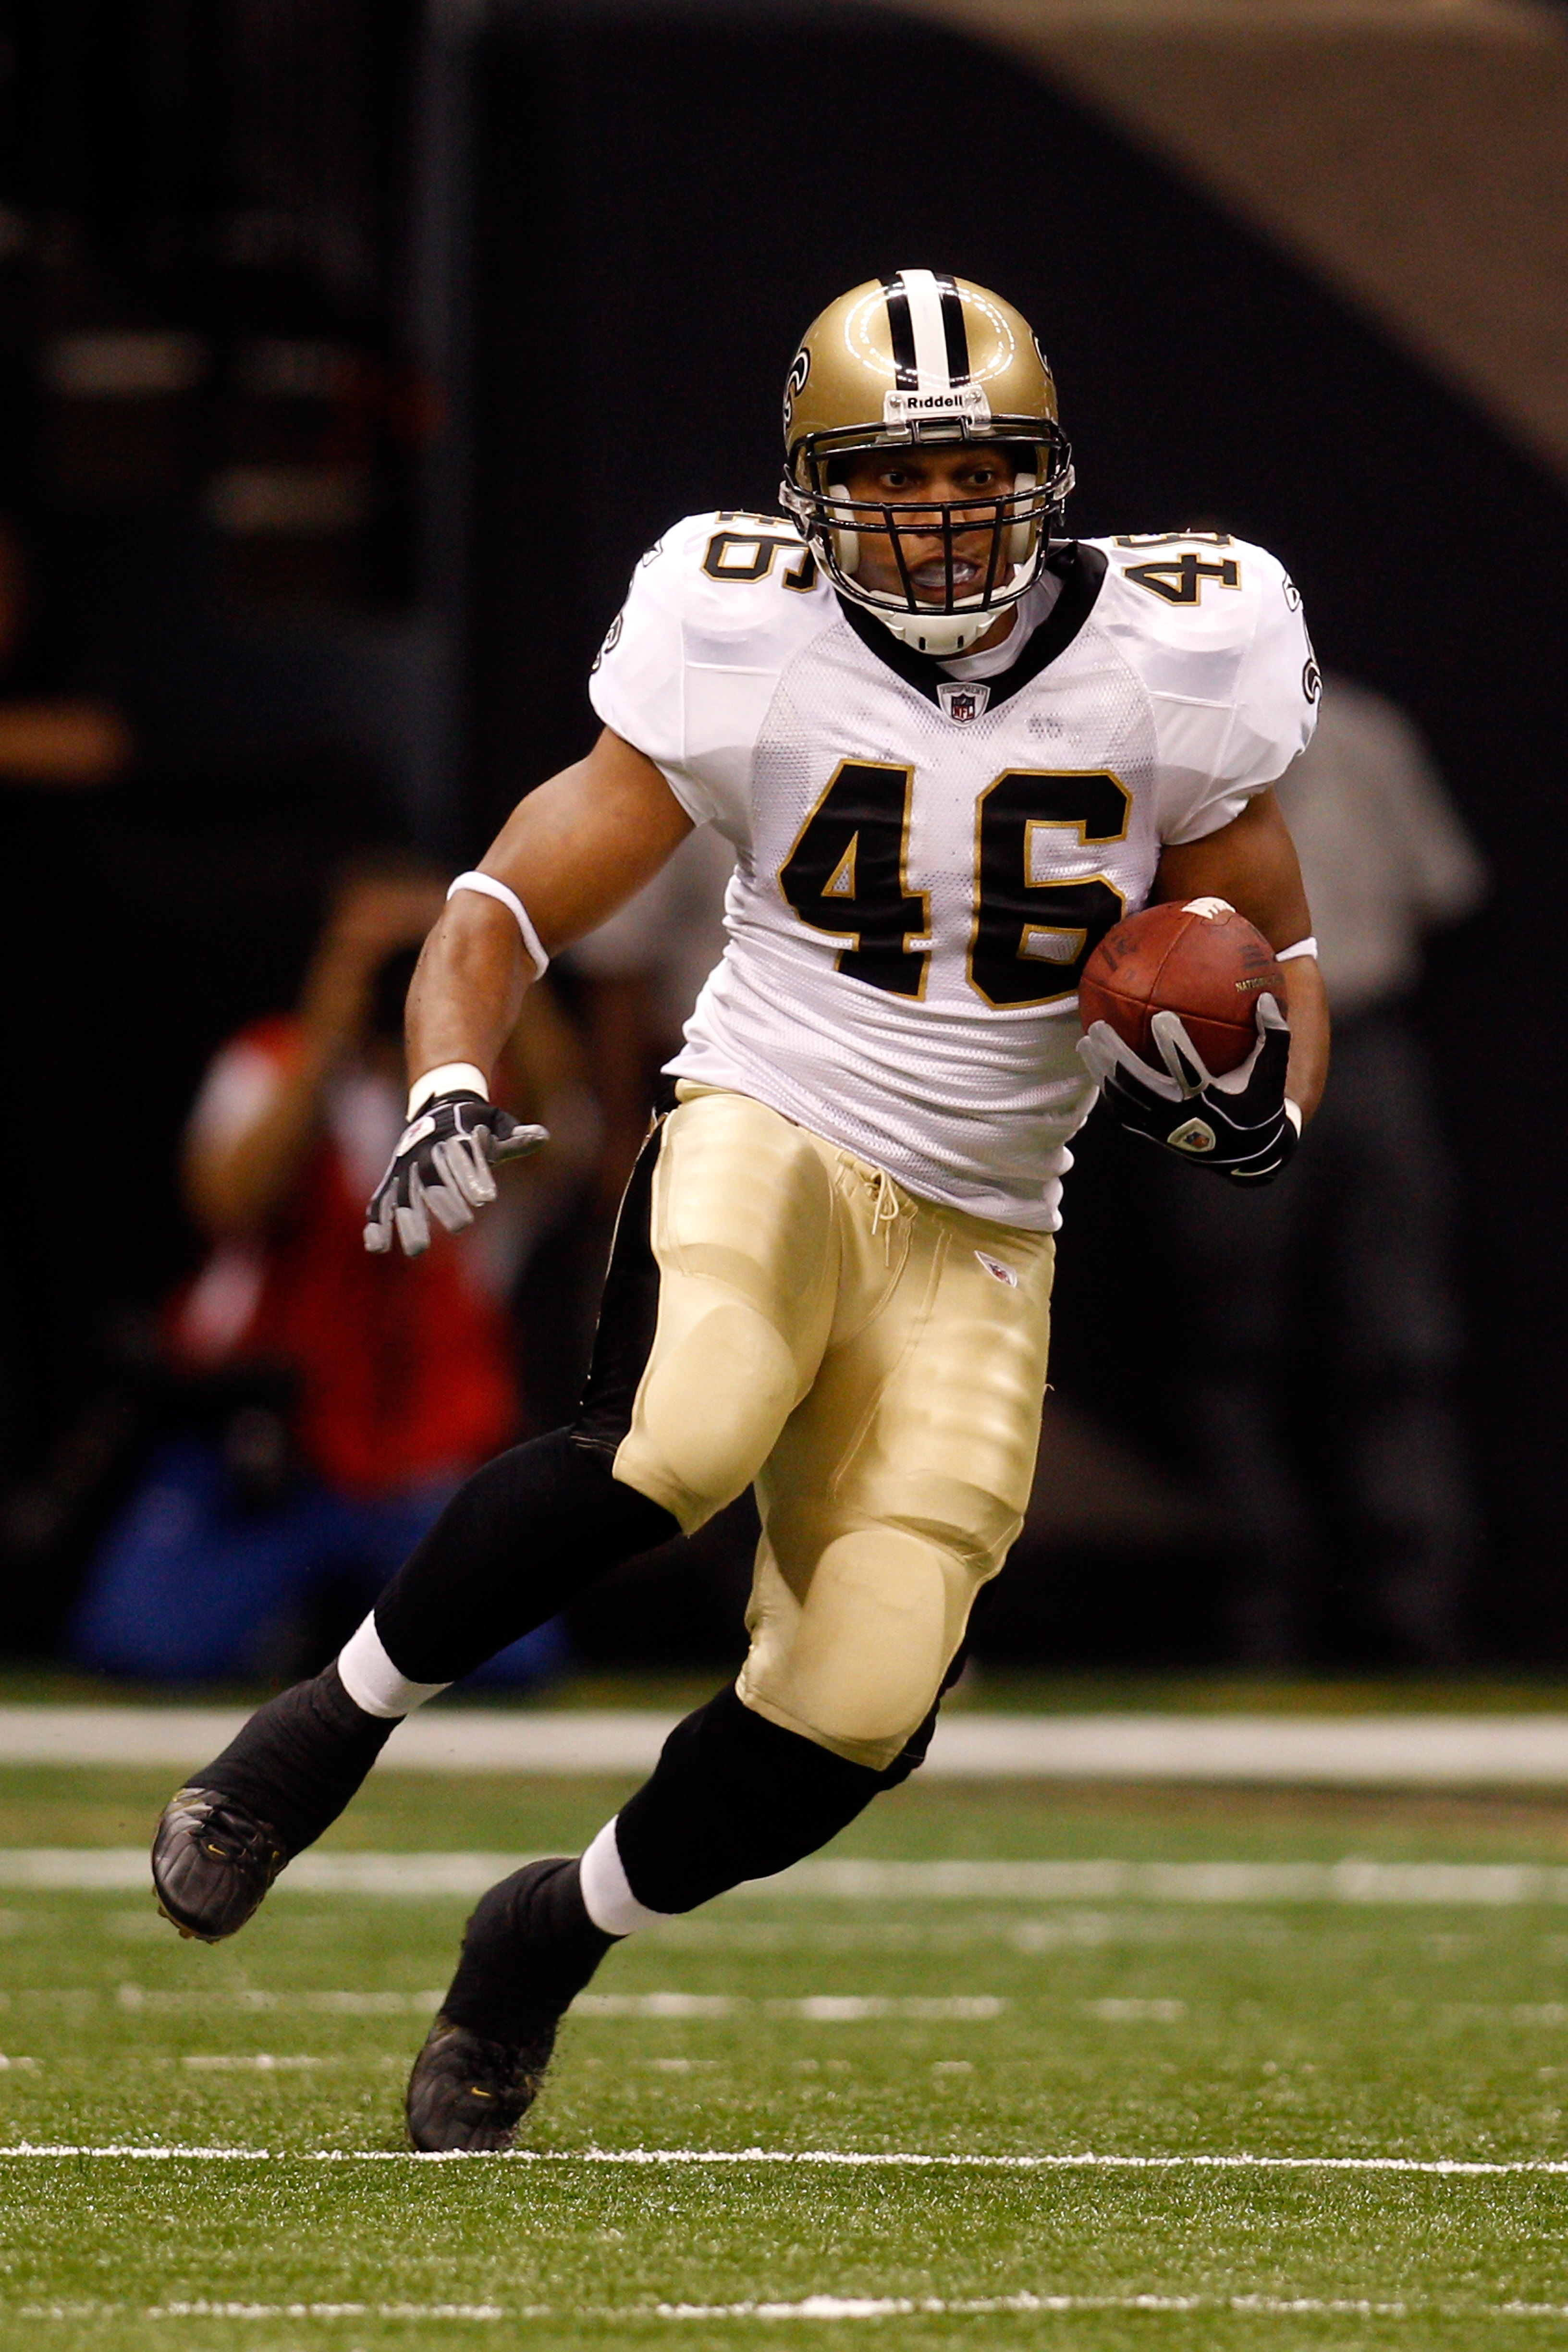 NEW ORLEANS - AUGUST 27:  Ladell Betts #46 of the New Orleans Saints in action against the San Diego Chargers at the Louisiana Superdome on August 27, 2010 in New Orleans, Louisiana.  (Photo by Chris Graythen/Getty Images)